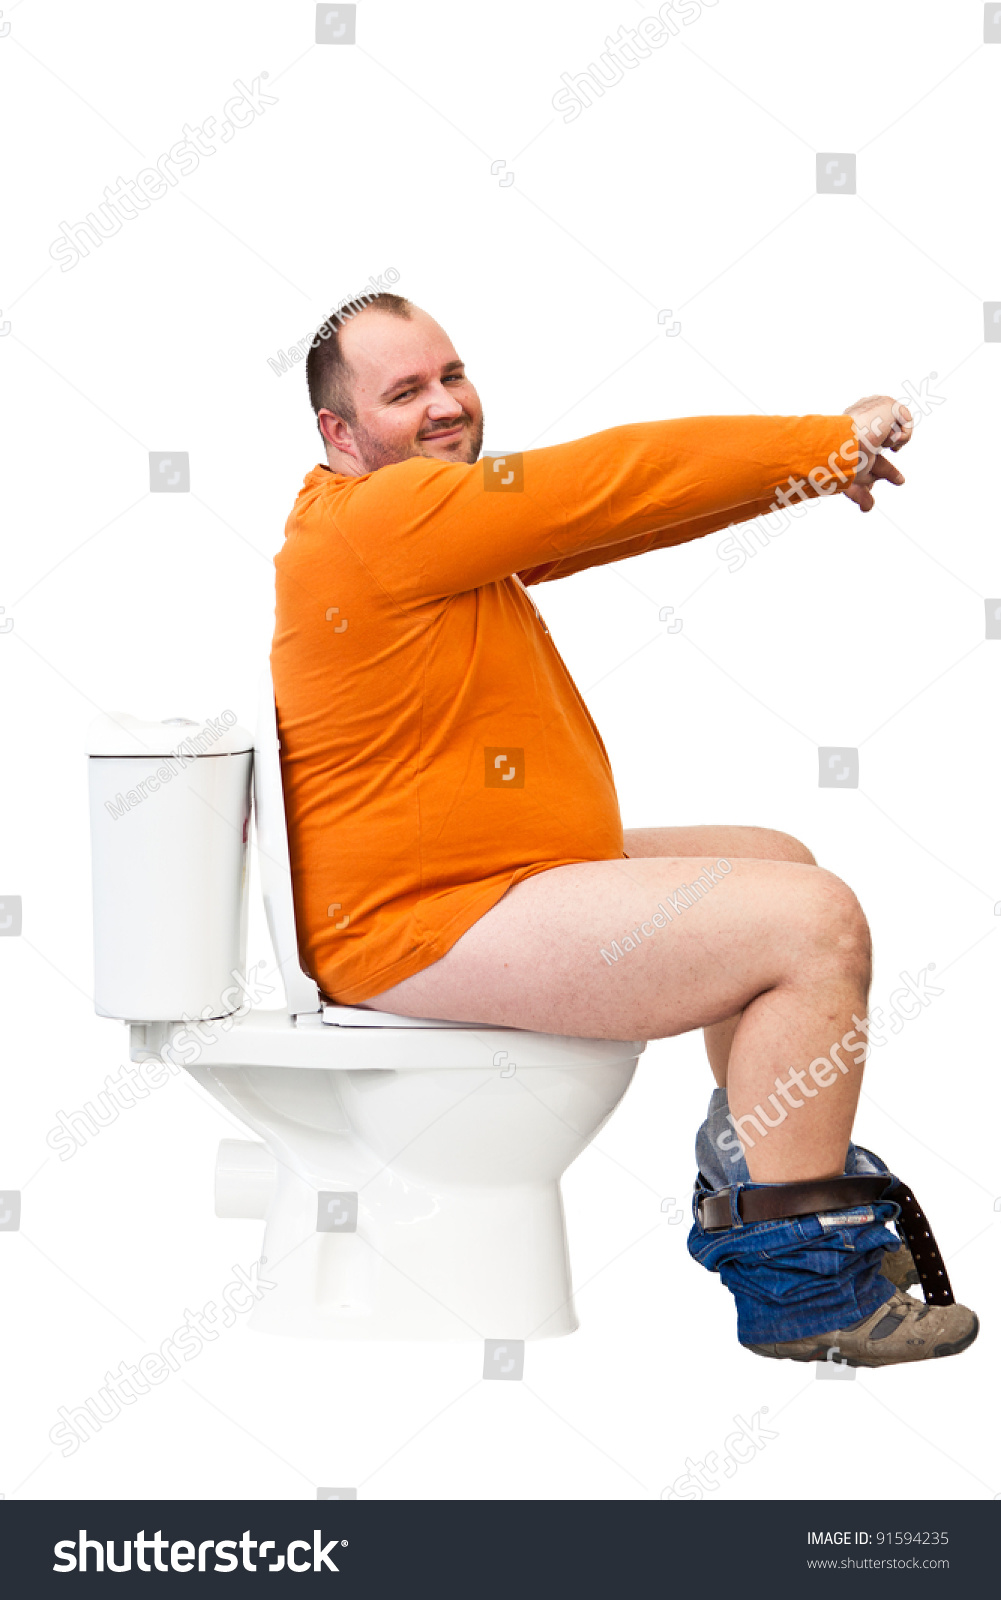 Man Sitting On Toilet Uplifted Hands Stock Photo 91594235 ...